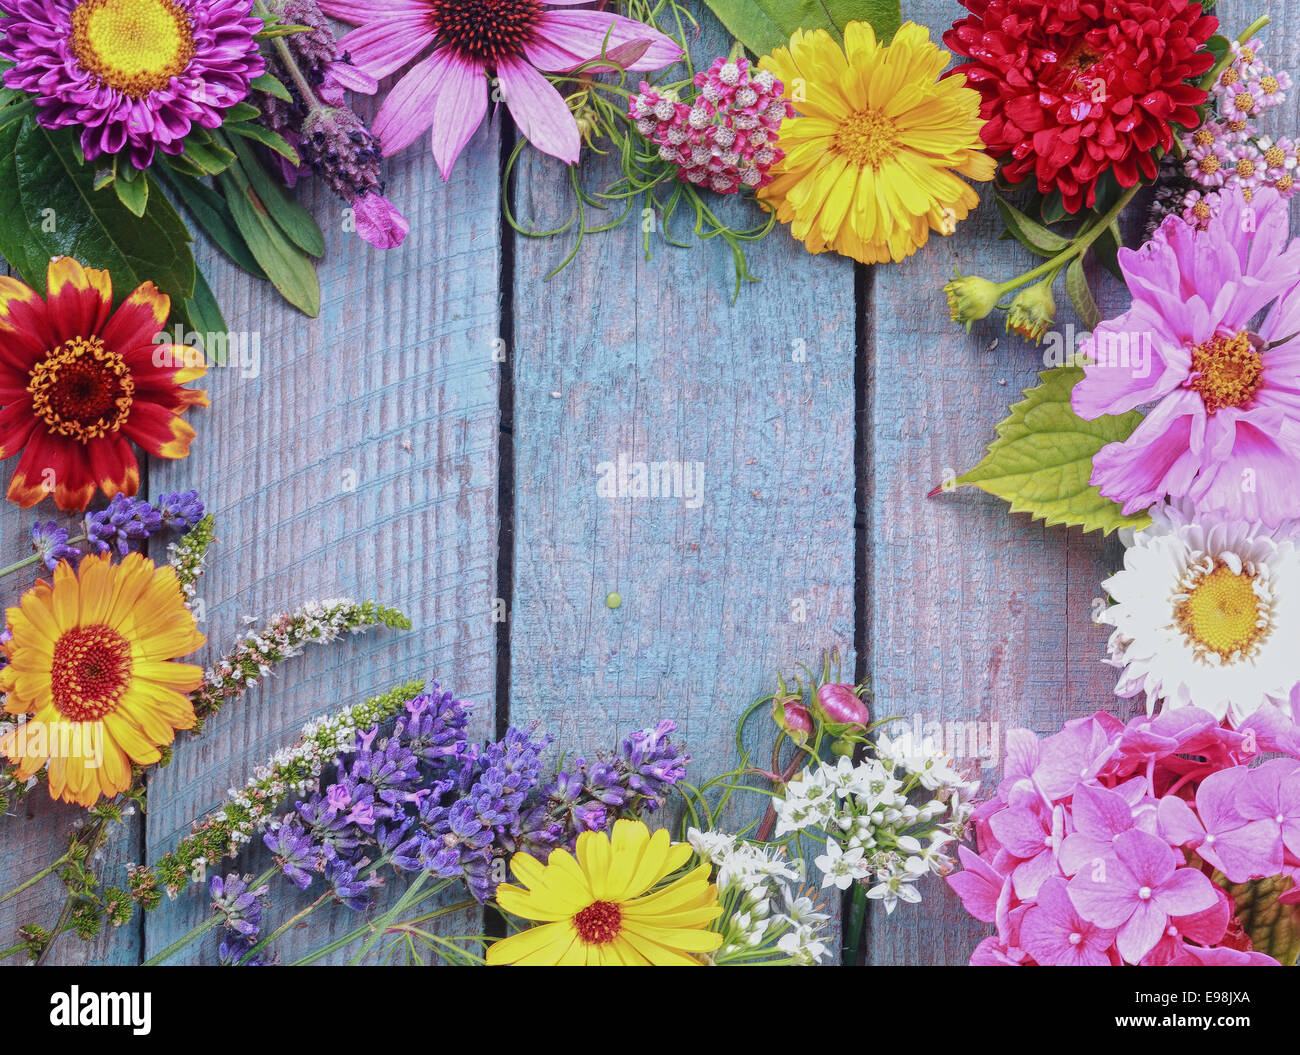 Colorful Frame Of Fresh Summer Flowers Arranged As A Border On Rustic Blue Wooden Boards With Copyspace For Your Text